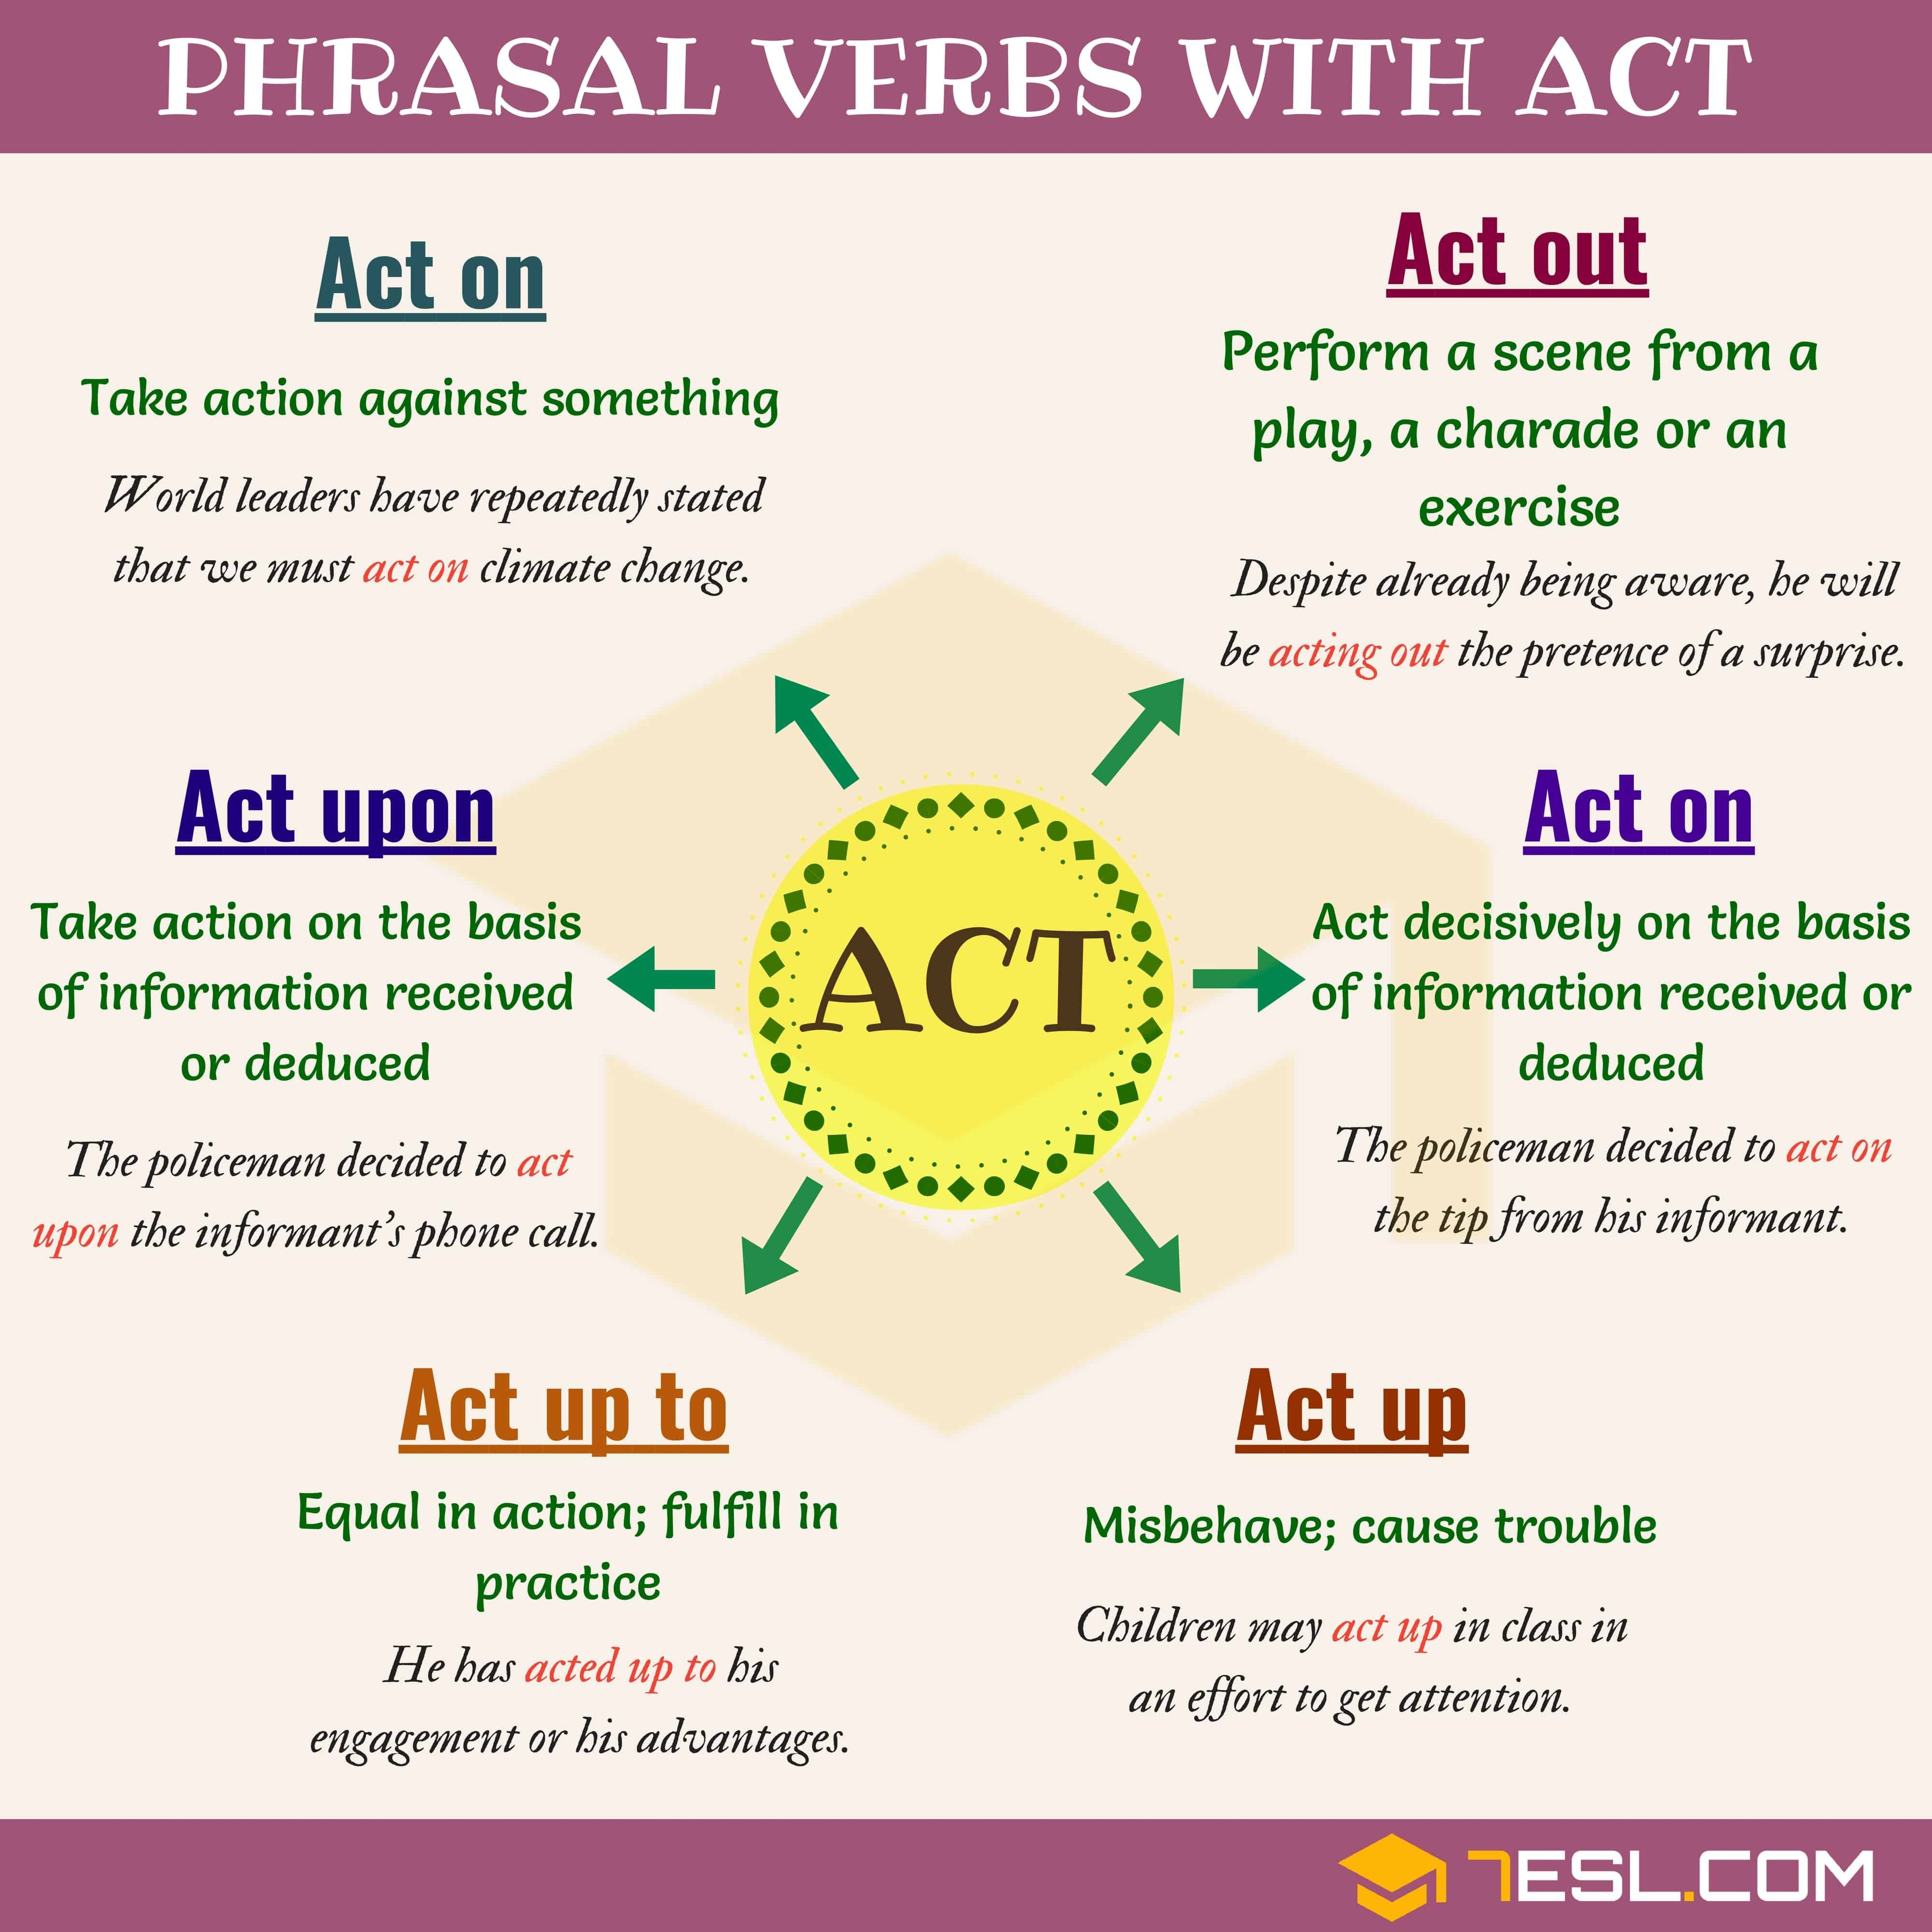 Phrasal Verbs With Act Act On Act Out Act Up Act Upon 7esl English Verbs Learn English Words English Vocabulary Words [ 4000 x 4000 Pixel ]